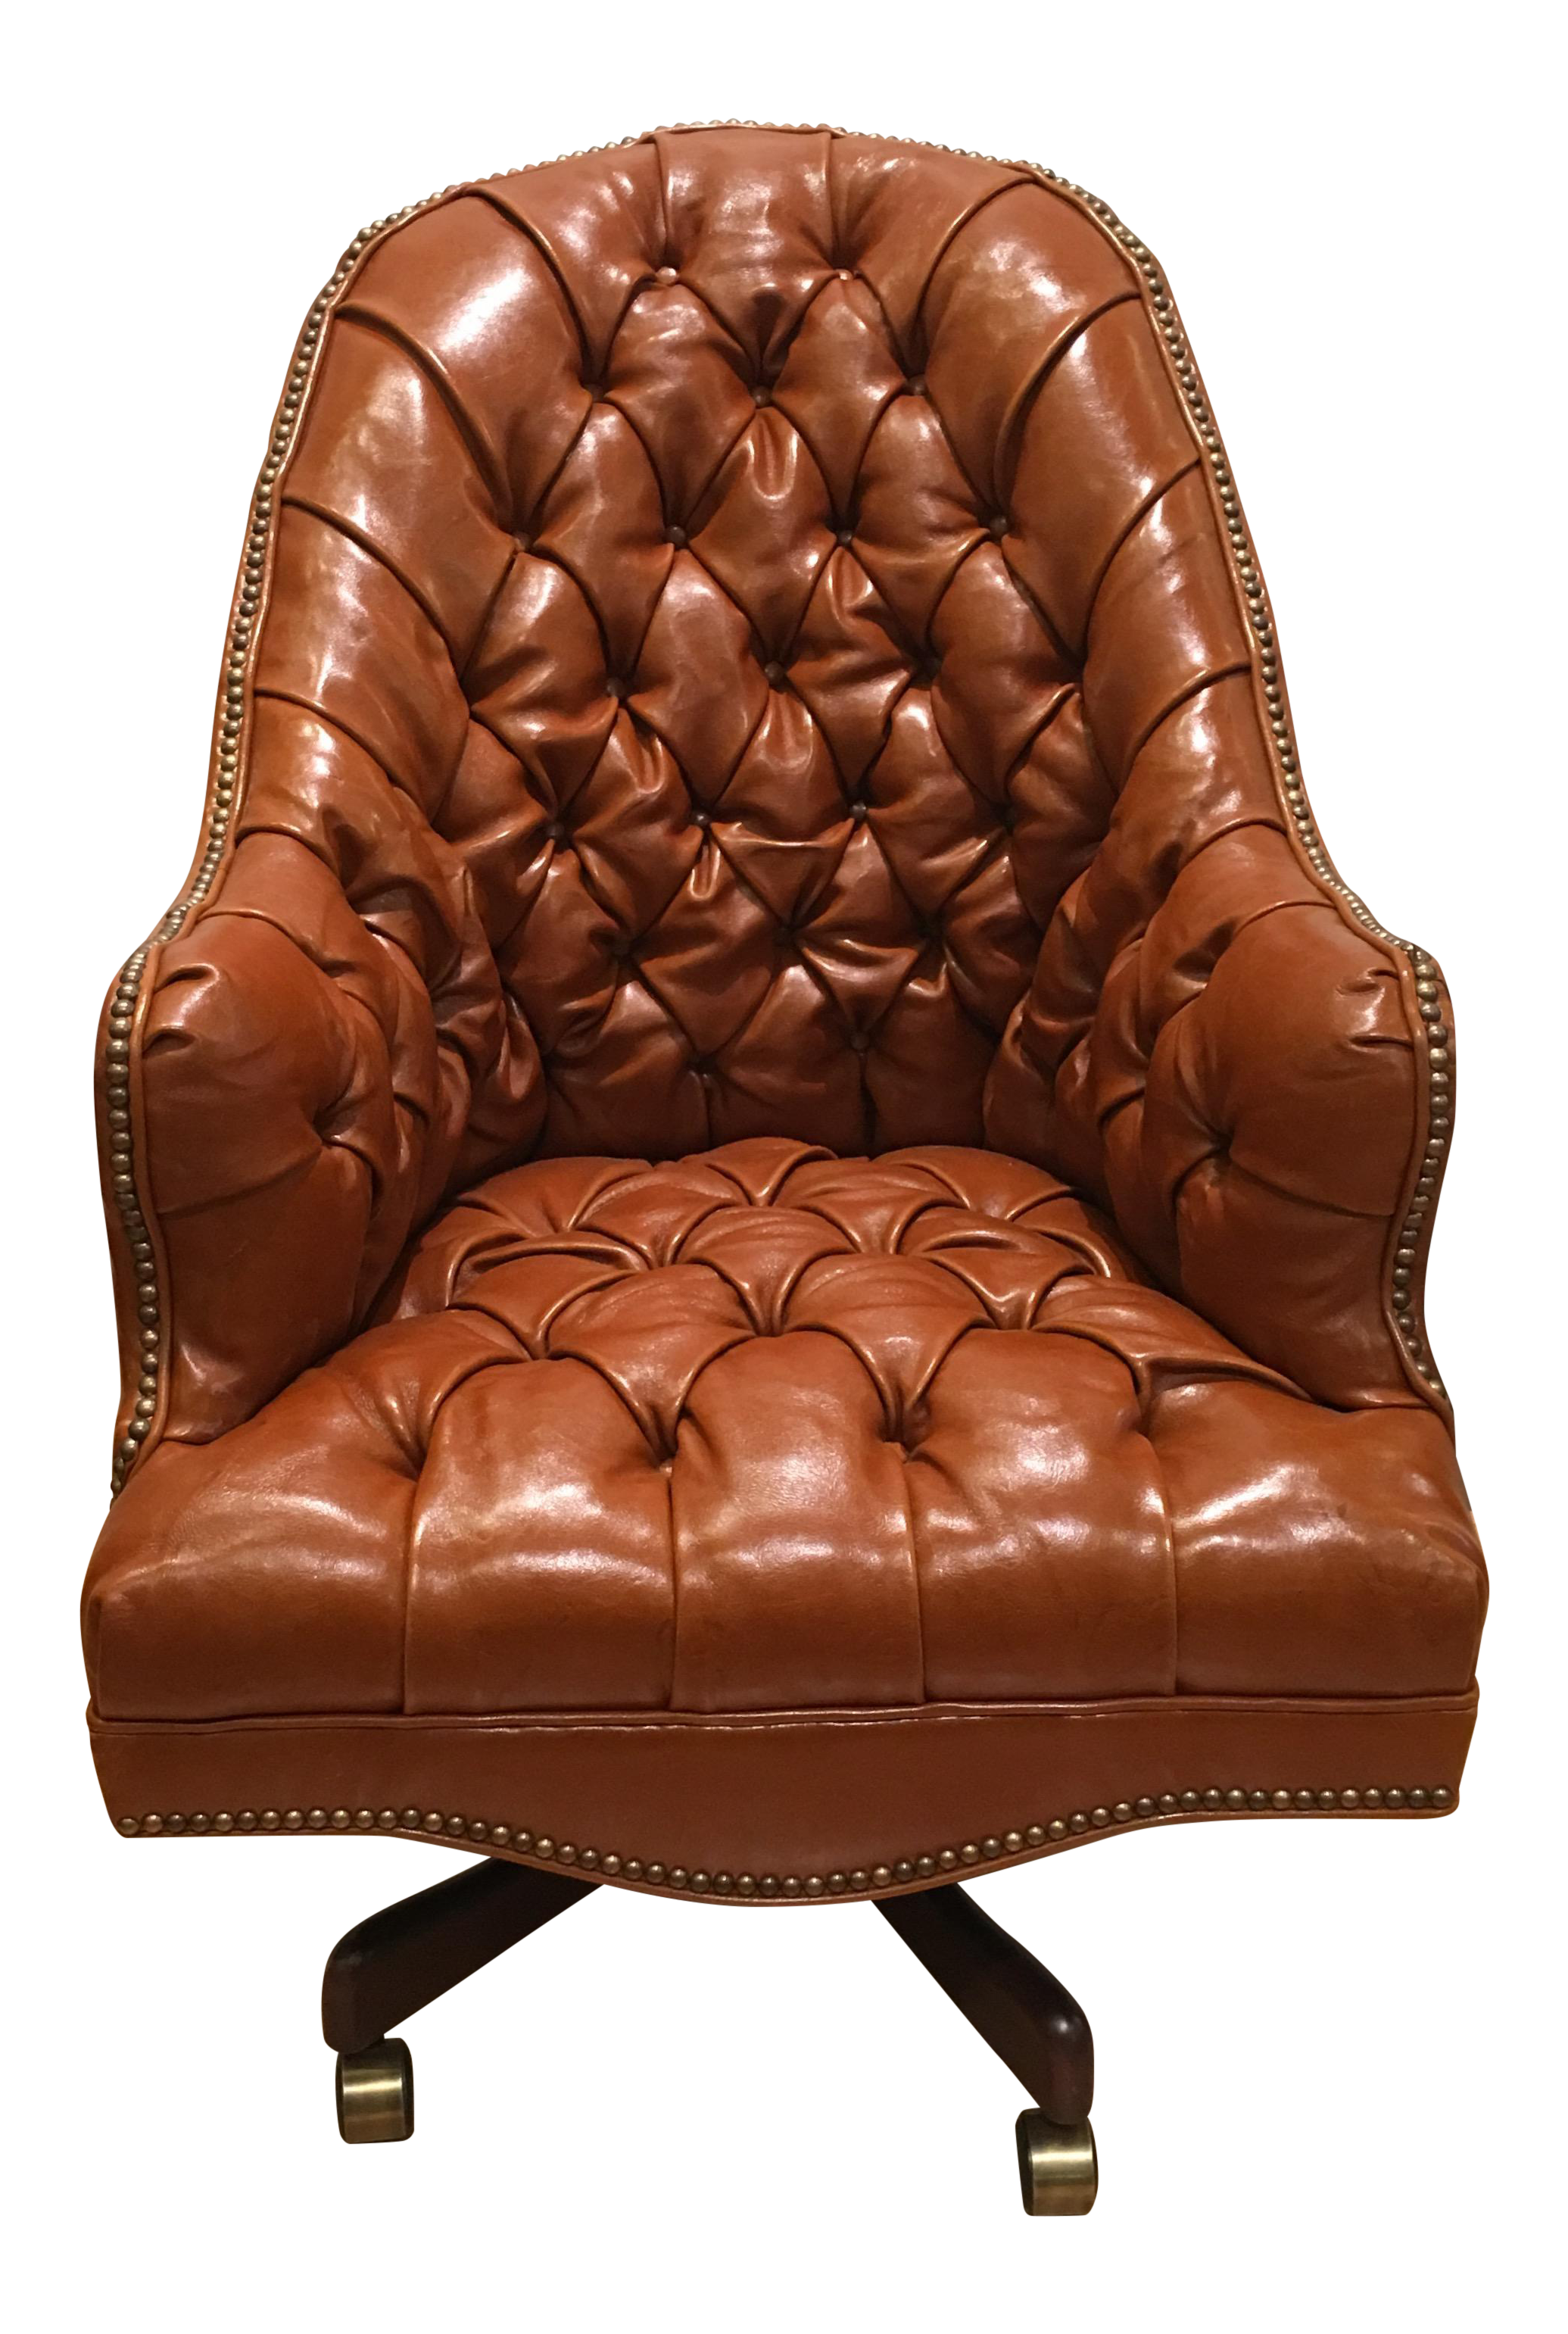 Old Hickory Tannery Leather Chesterfield Desk Chair - Image 1 of 5  sc 1 st  Decaso & Excellent Old Hickory Tannery Leather Chesterfield Desk Chair | DECASO